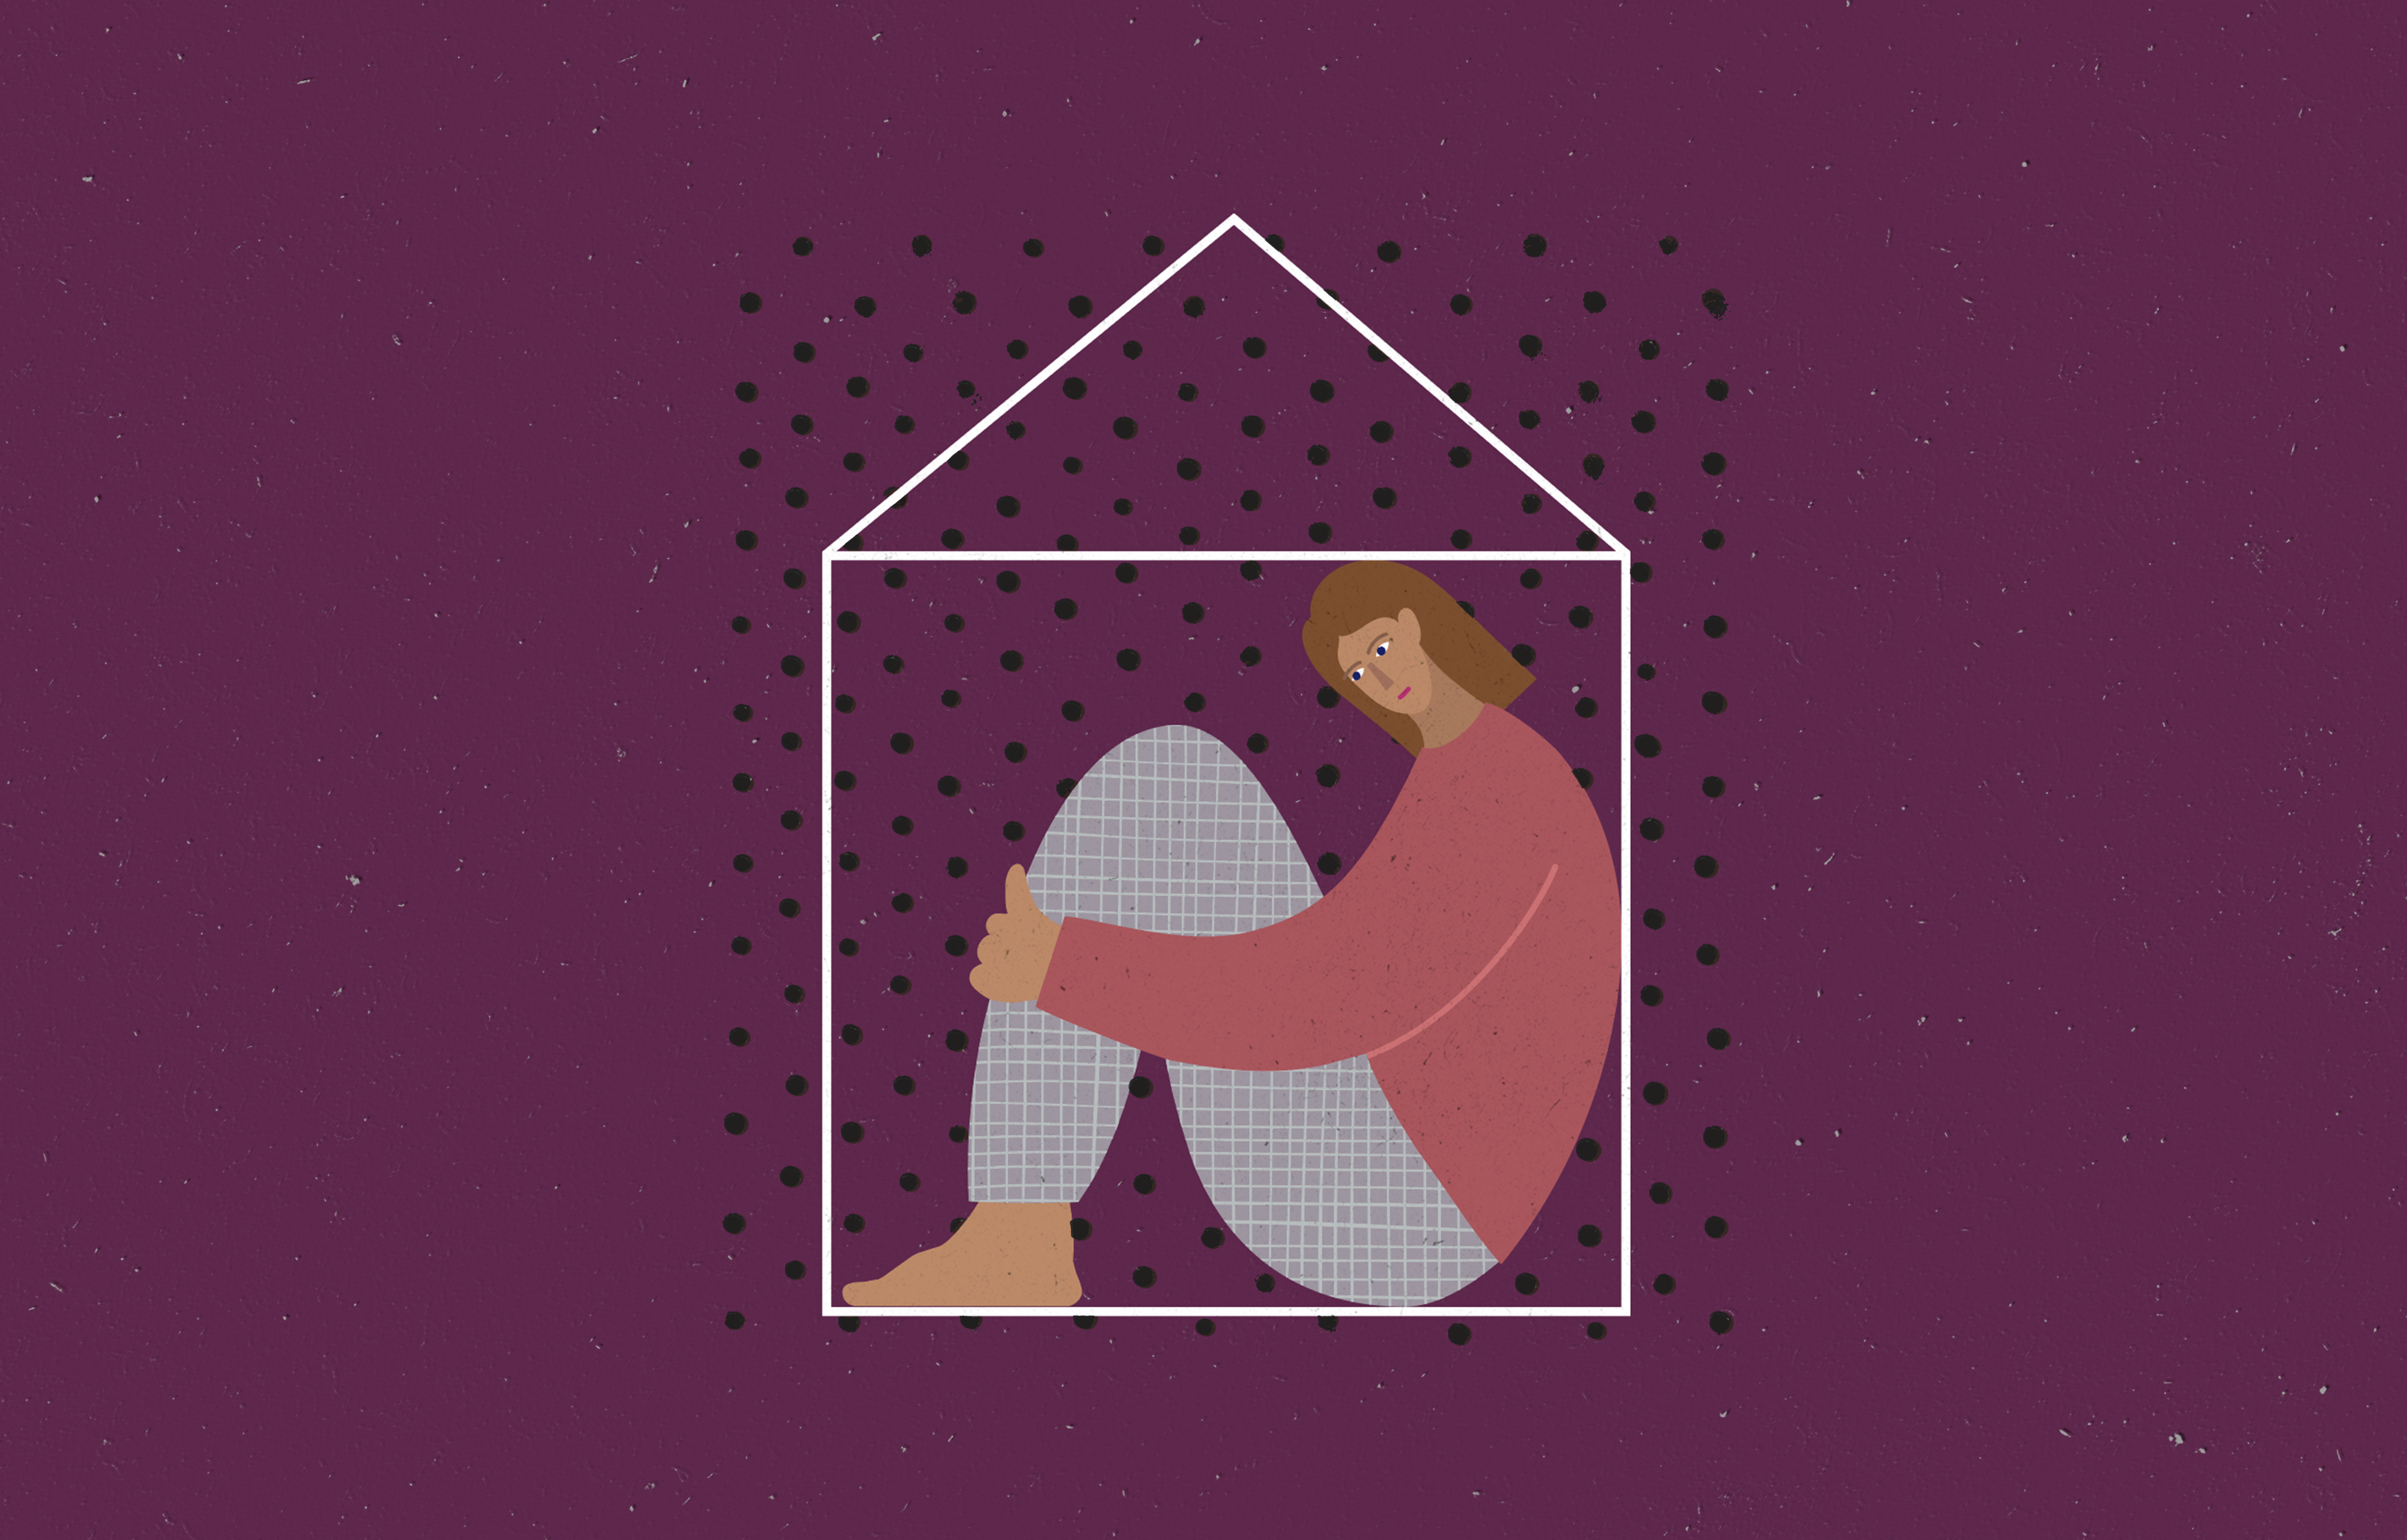 An illustration of a person in the fetal position with a house outline around them.